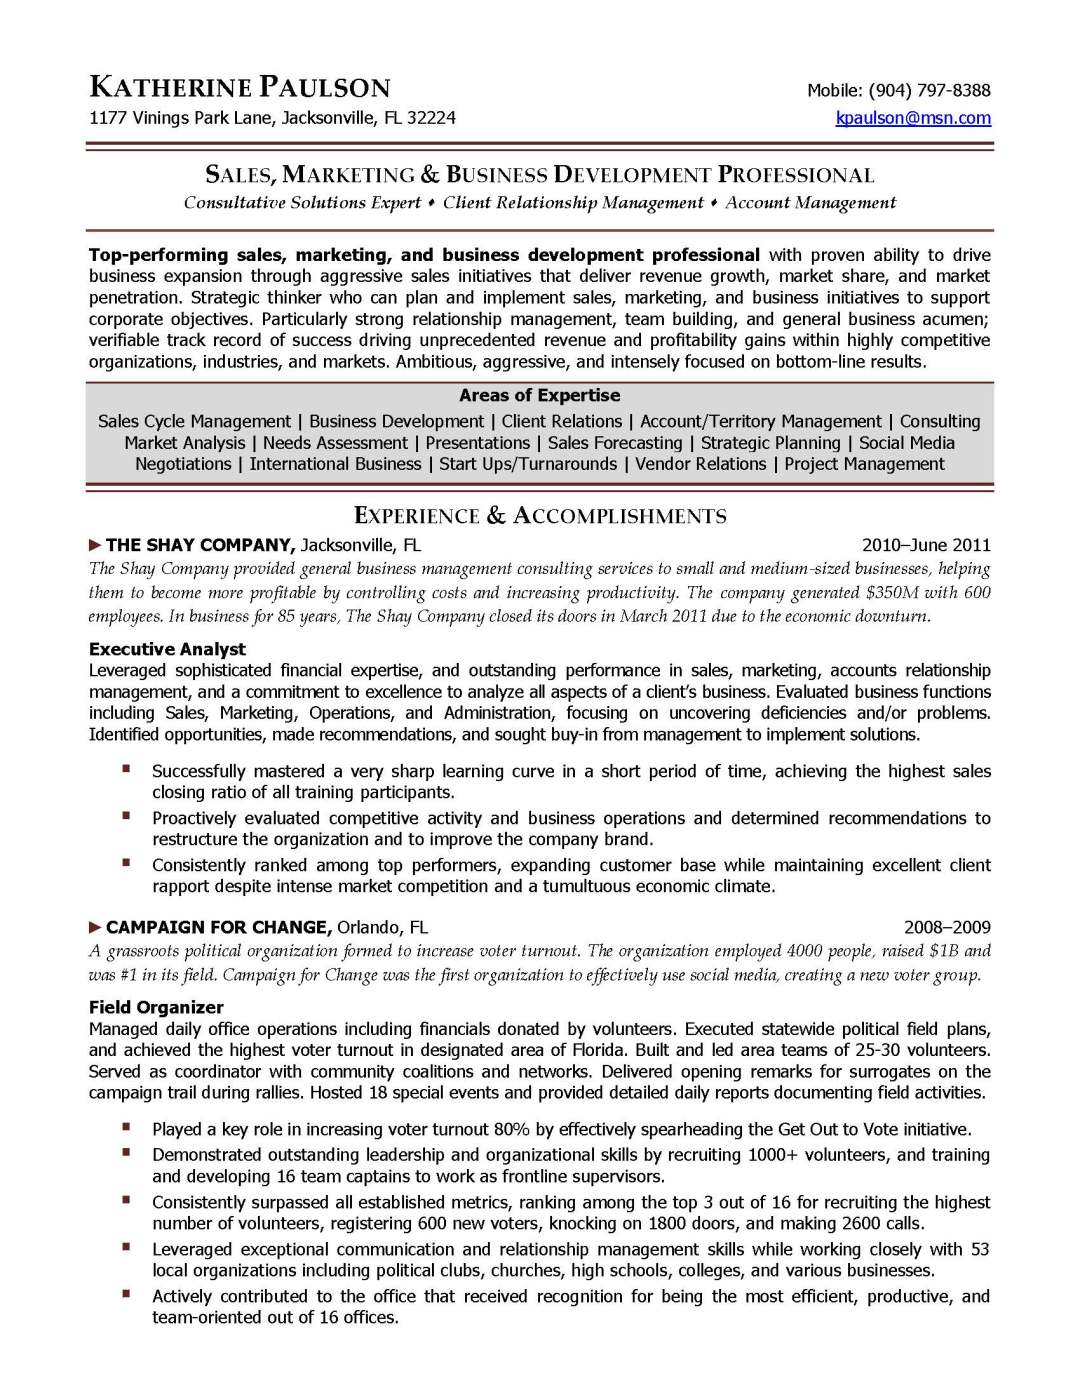 Professional resume writing kansas city